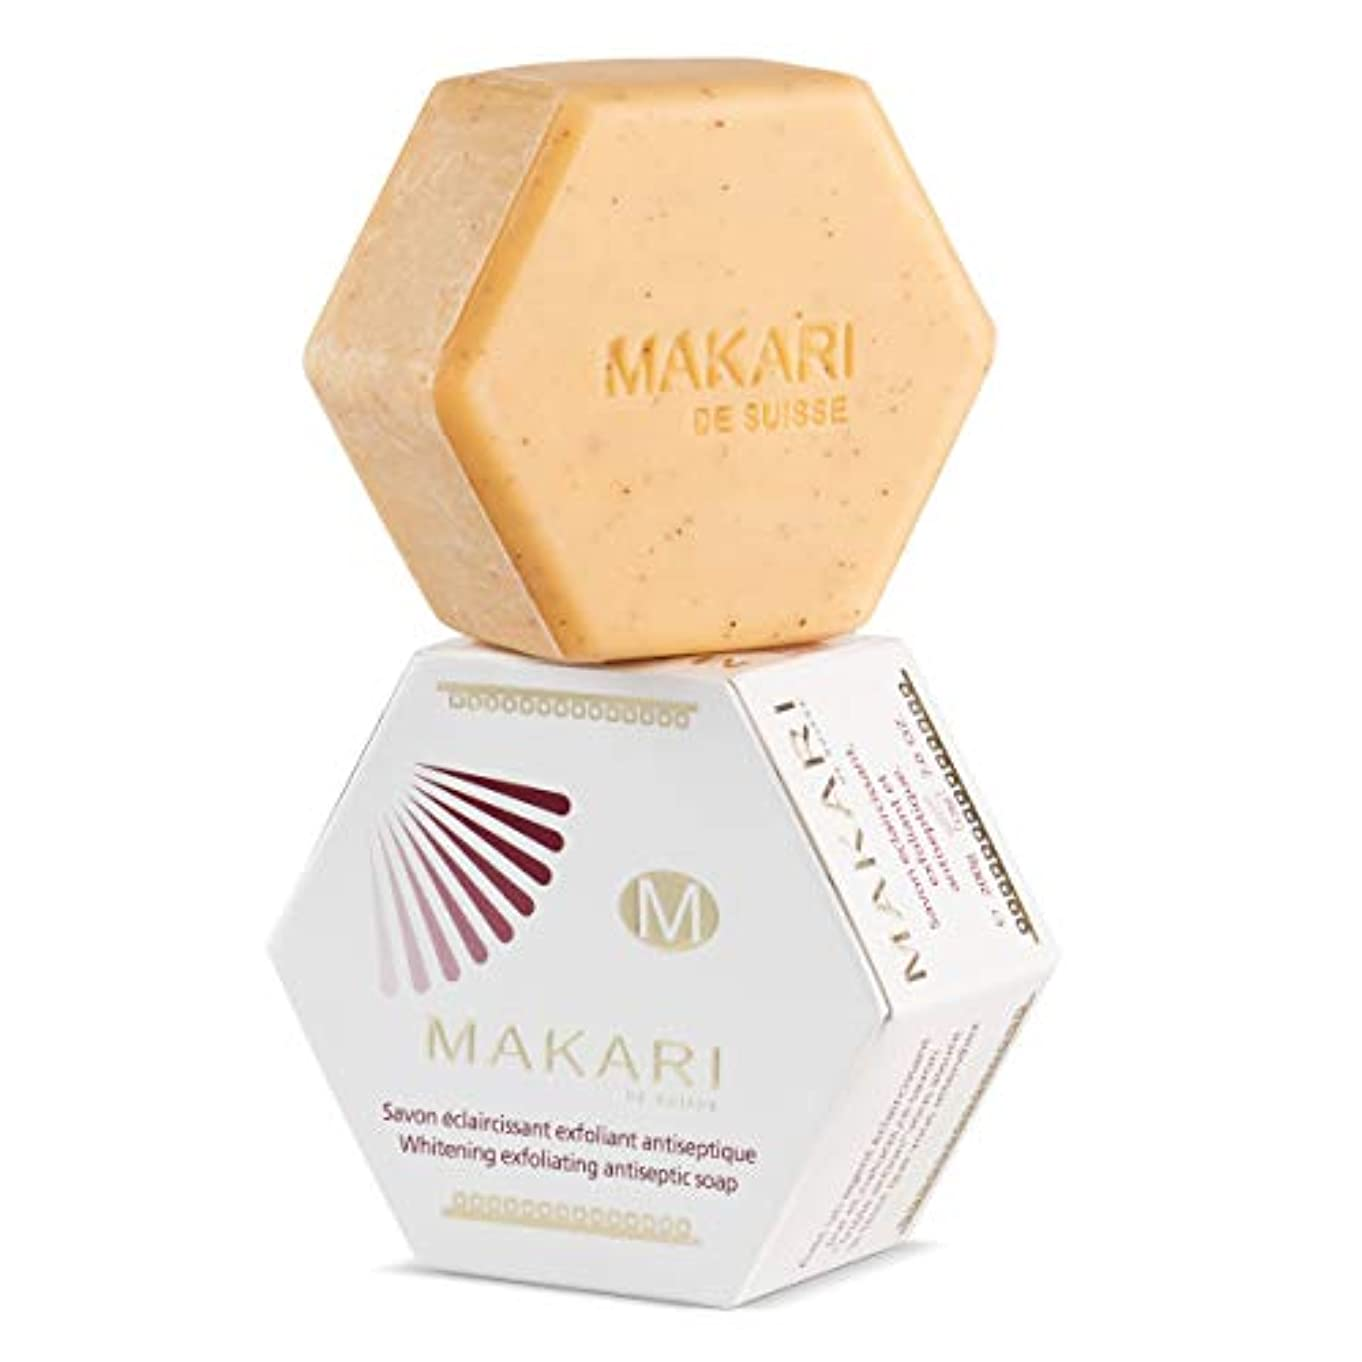 詐欺師人類スマートMAKARI Classic Whitening Exfoliating Antiseptic Soap 7 Oz.– Cleansing & Moisturizing Bar Soap For Face & Body...